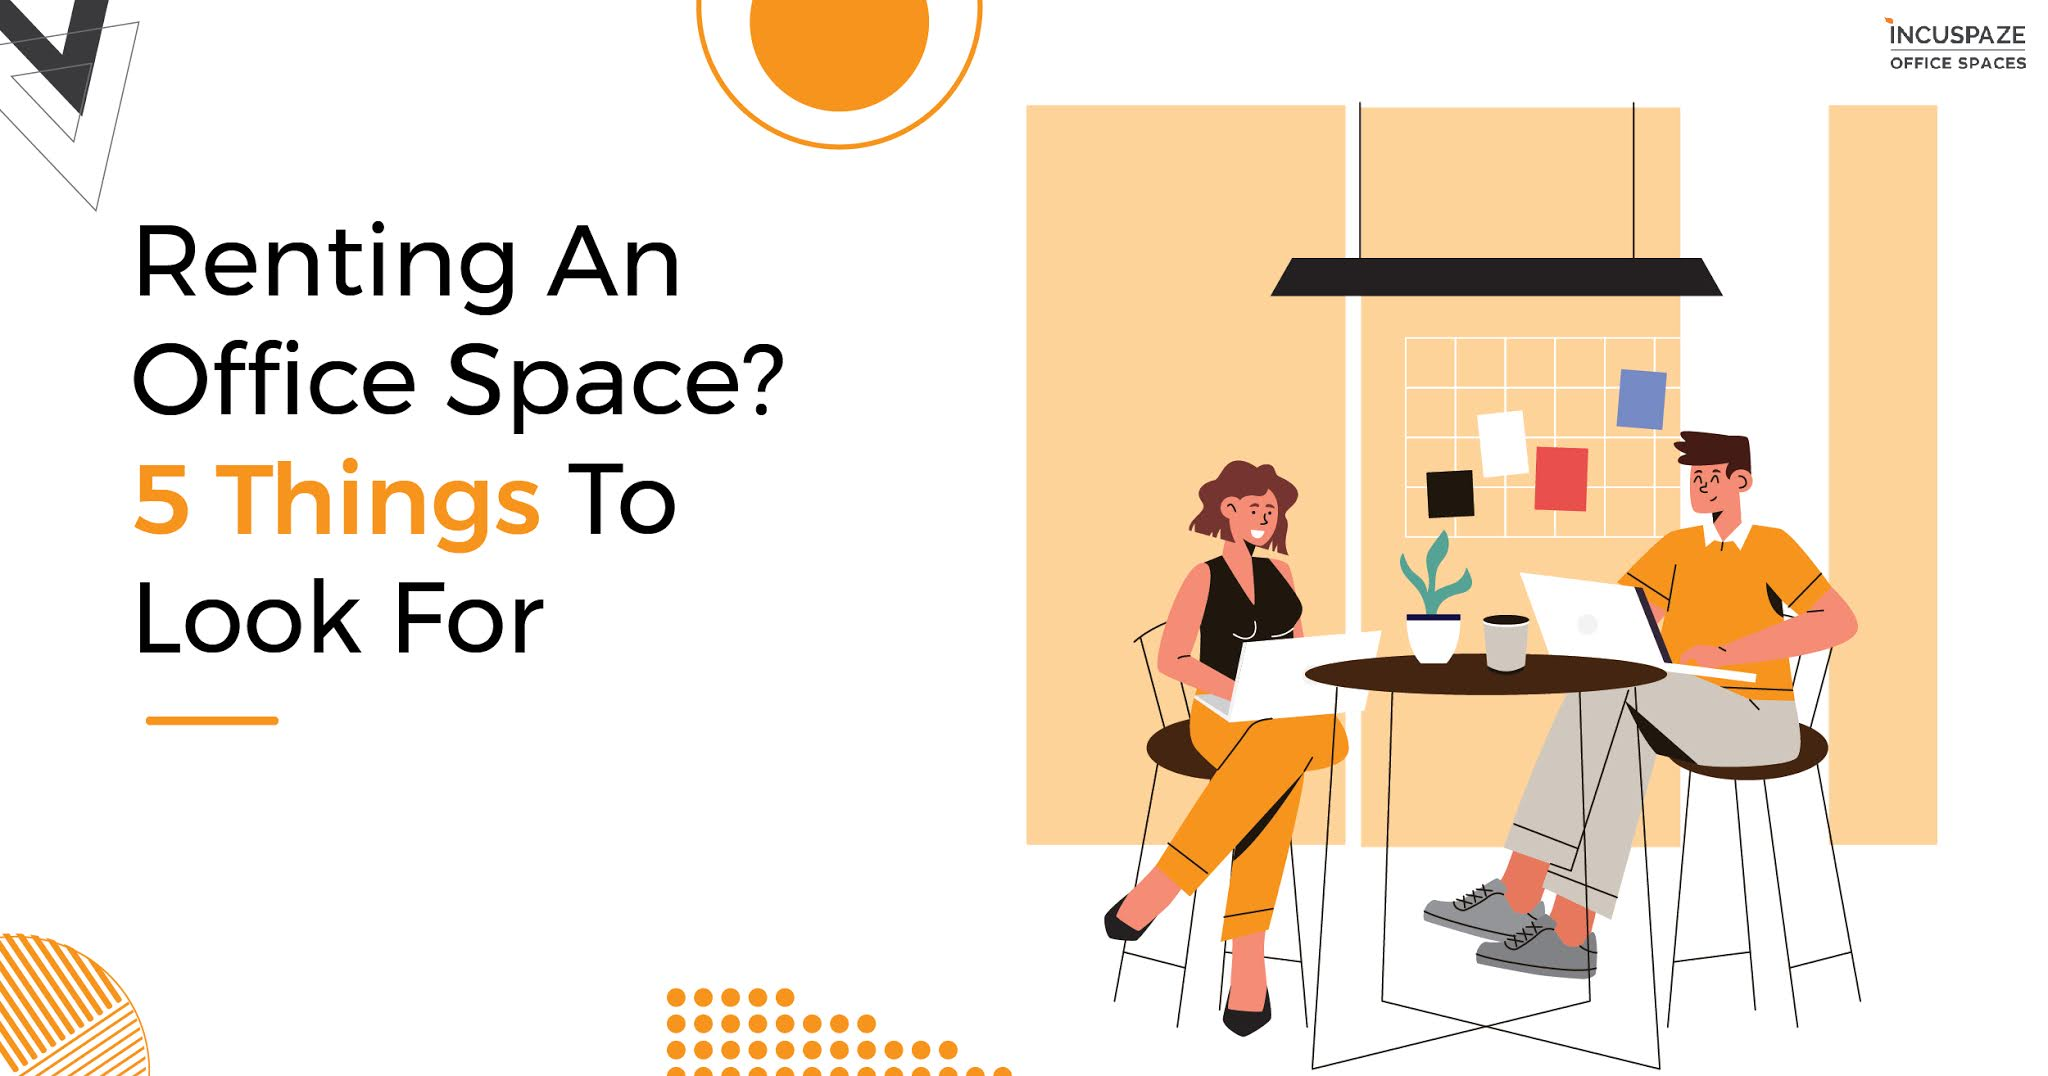 factors-to-look-for-office-space-incuspaze